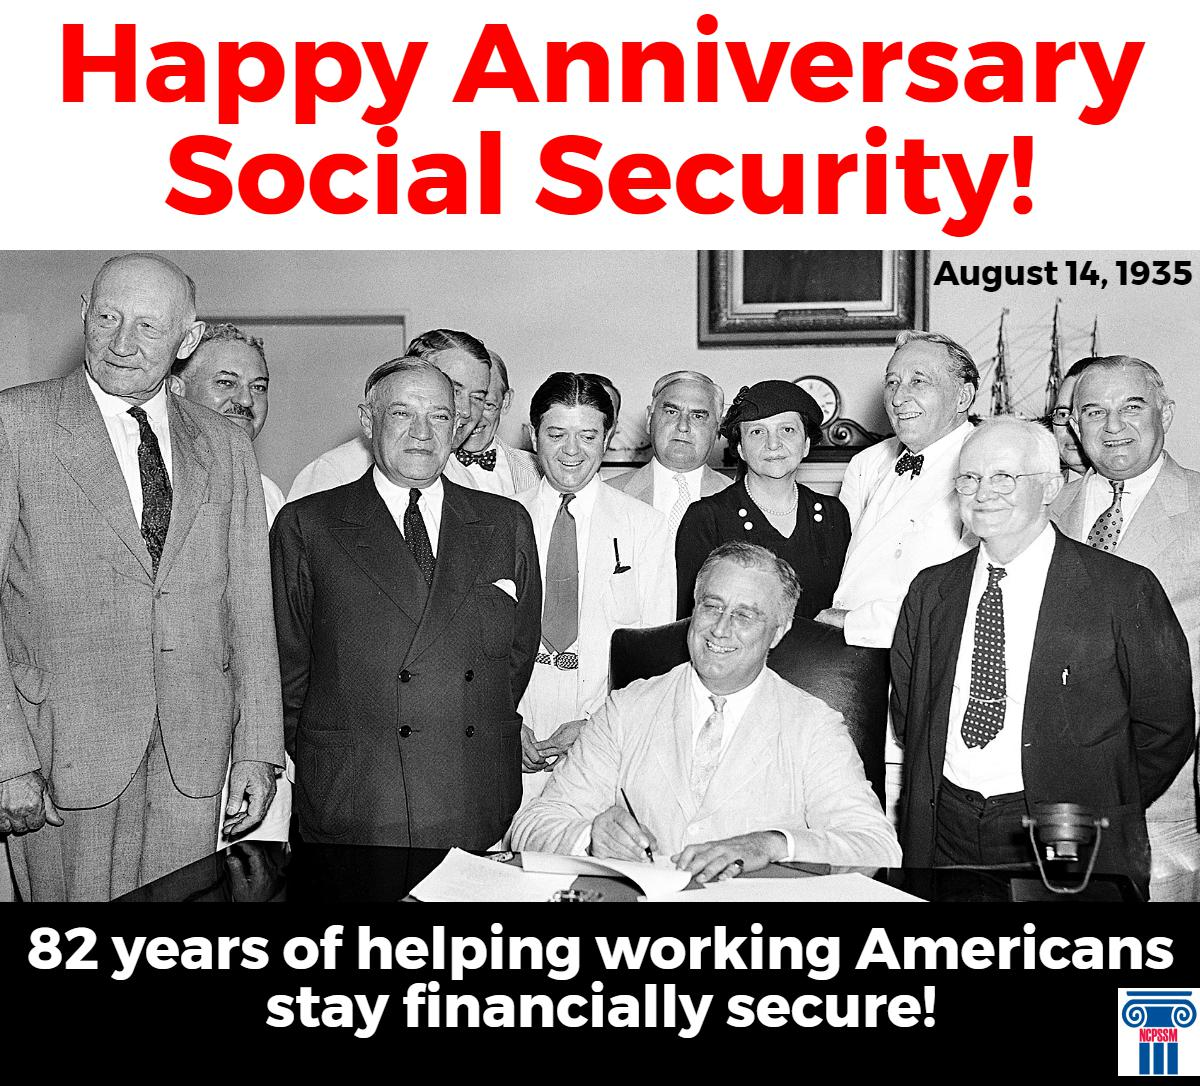 Happy Anniversary to #SocialSecurity! For 82 years, the program has provided financial security for all working Americans. #SocSec82 https://t.co/Aku8f3ak34